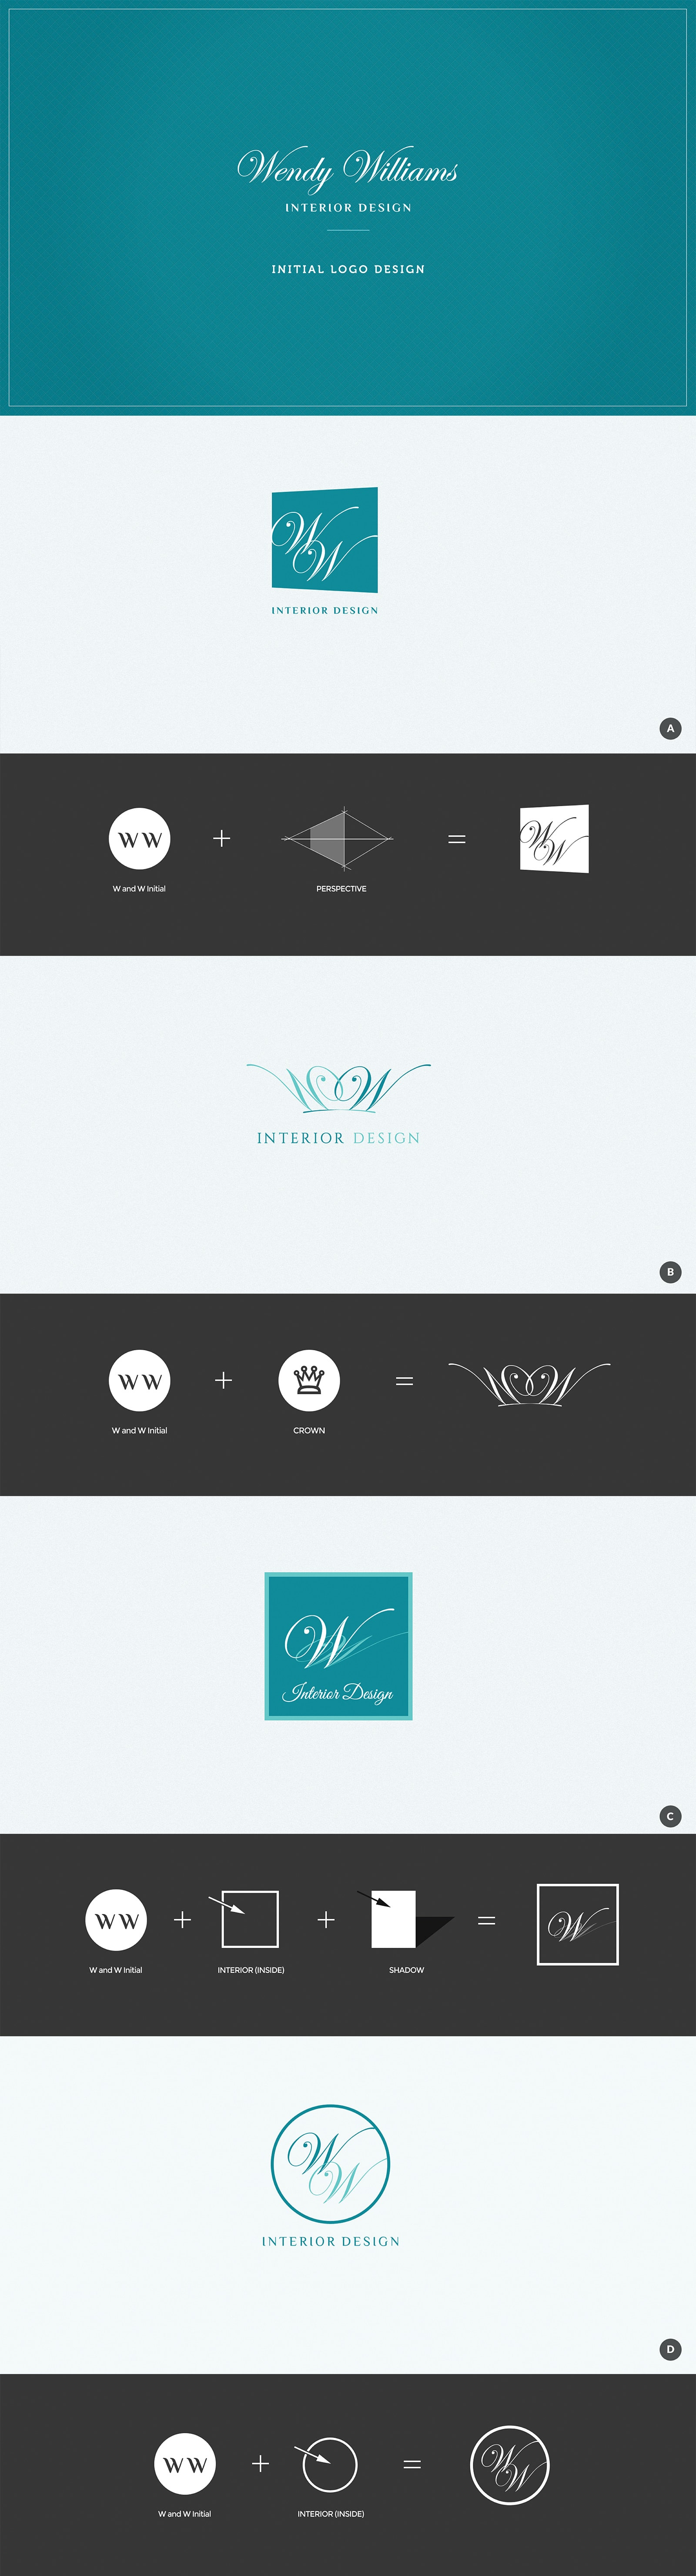 branding-wendy-williams-propose